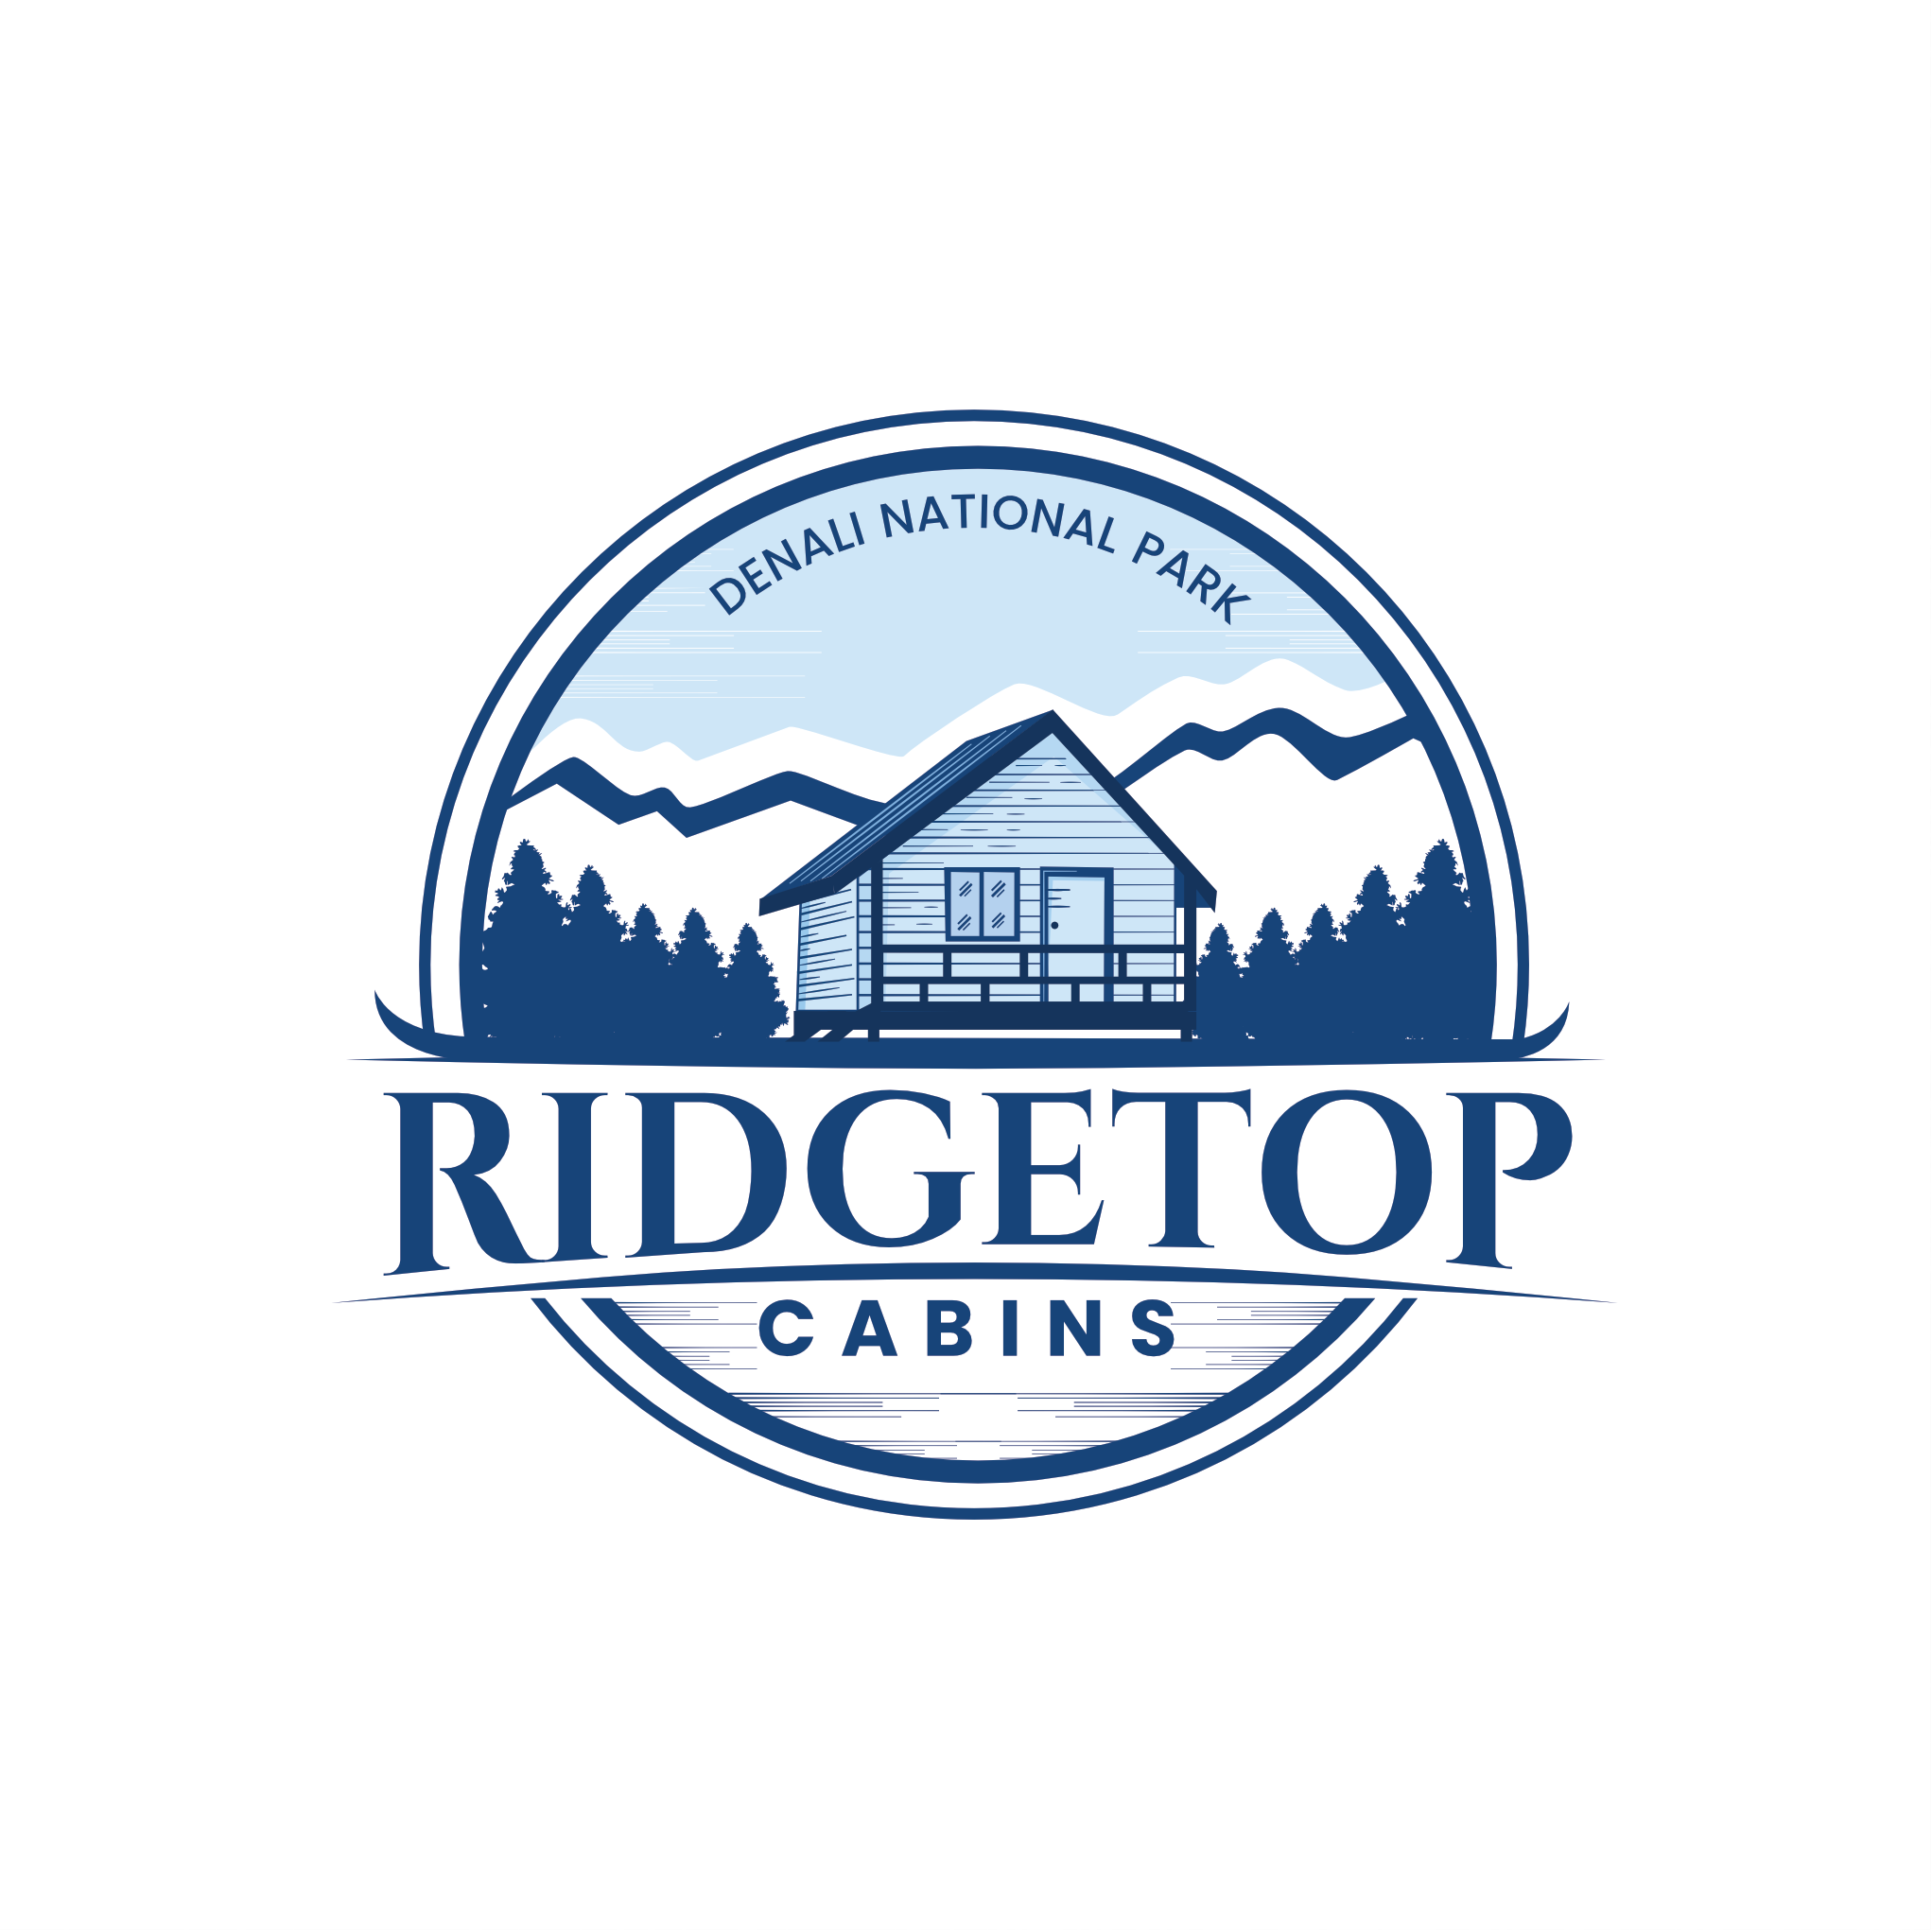 Logo for a remote ridgetop oasis on the edge of Denali National Park.